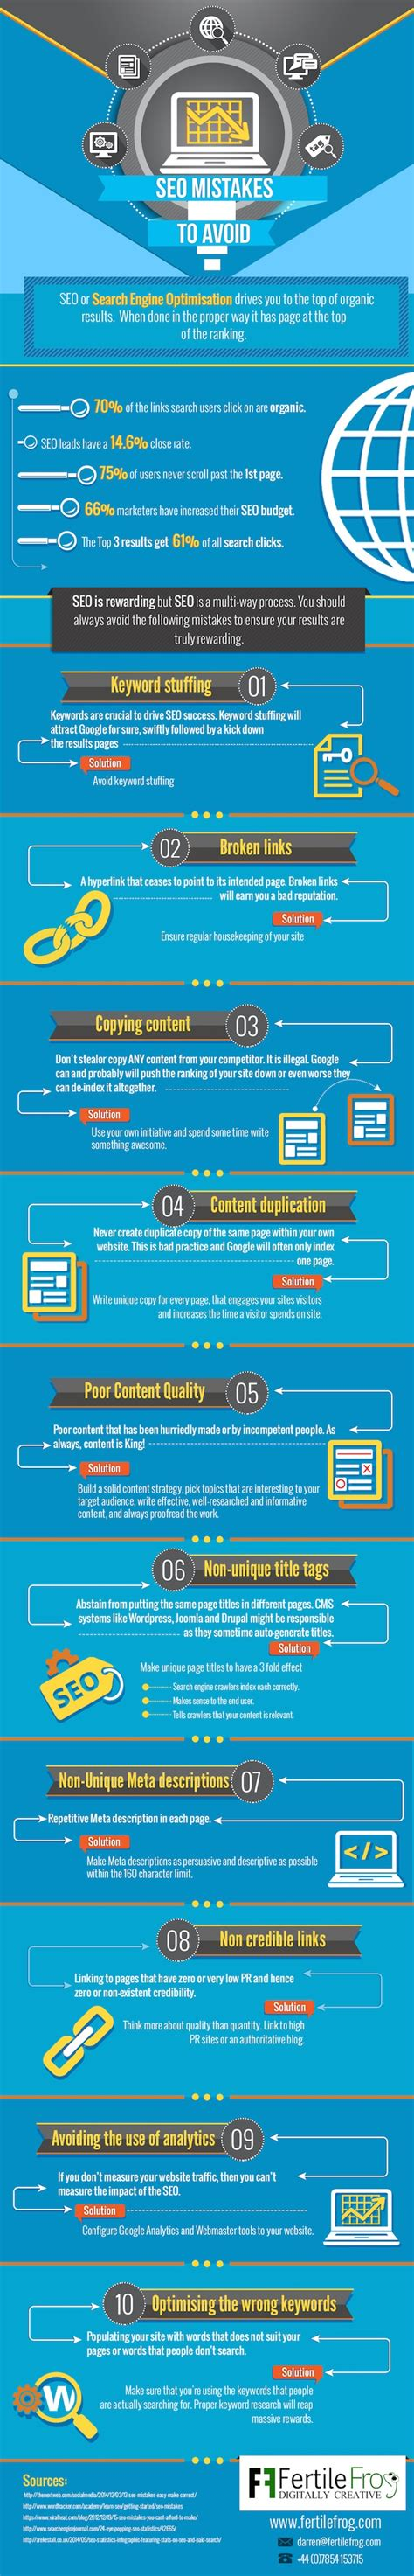 10 seo mistakes you need to fix now infographic